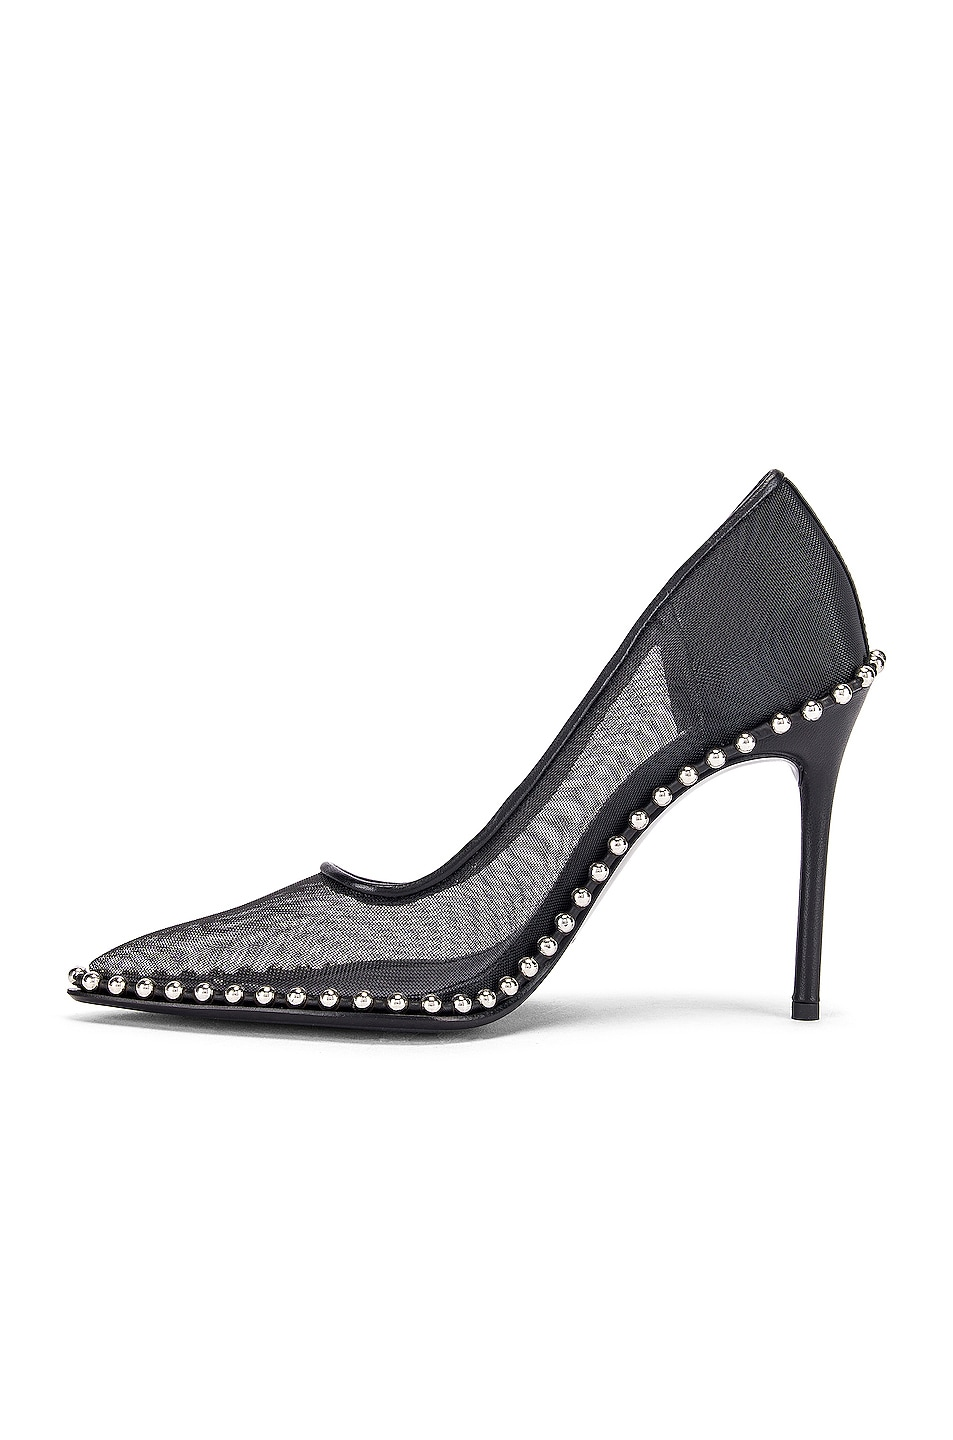 Image 5 of Alexander Wang Rie Mesh Heel in Black